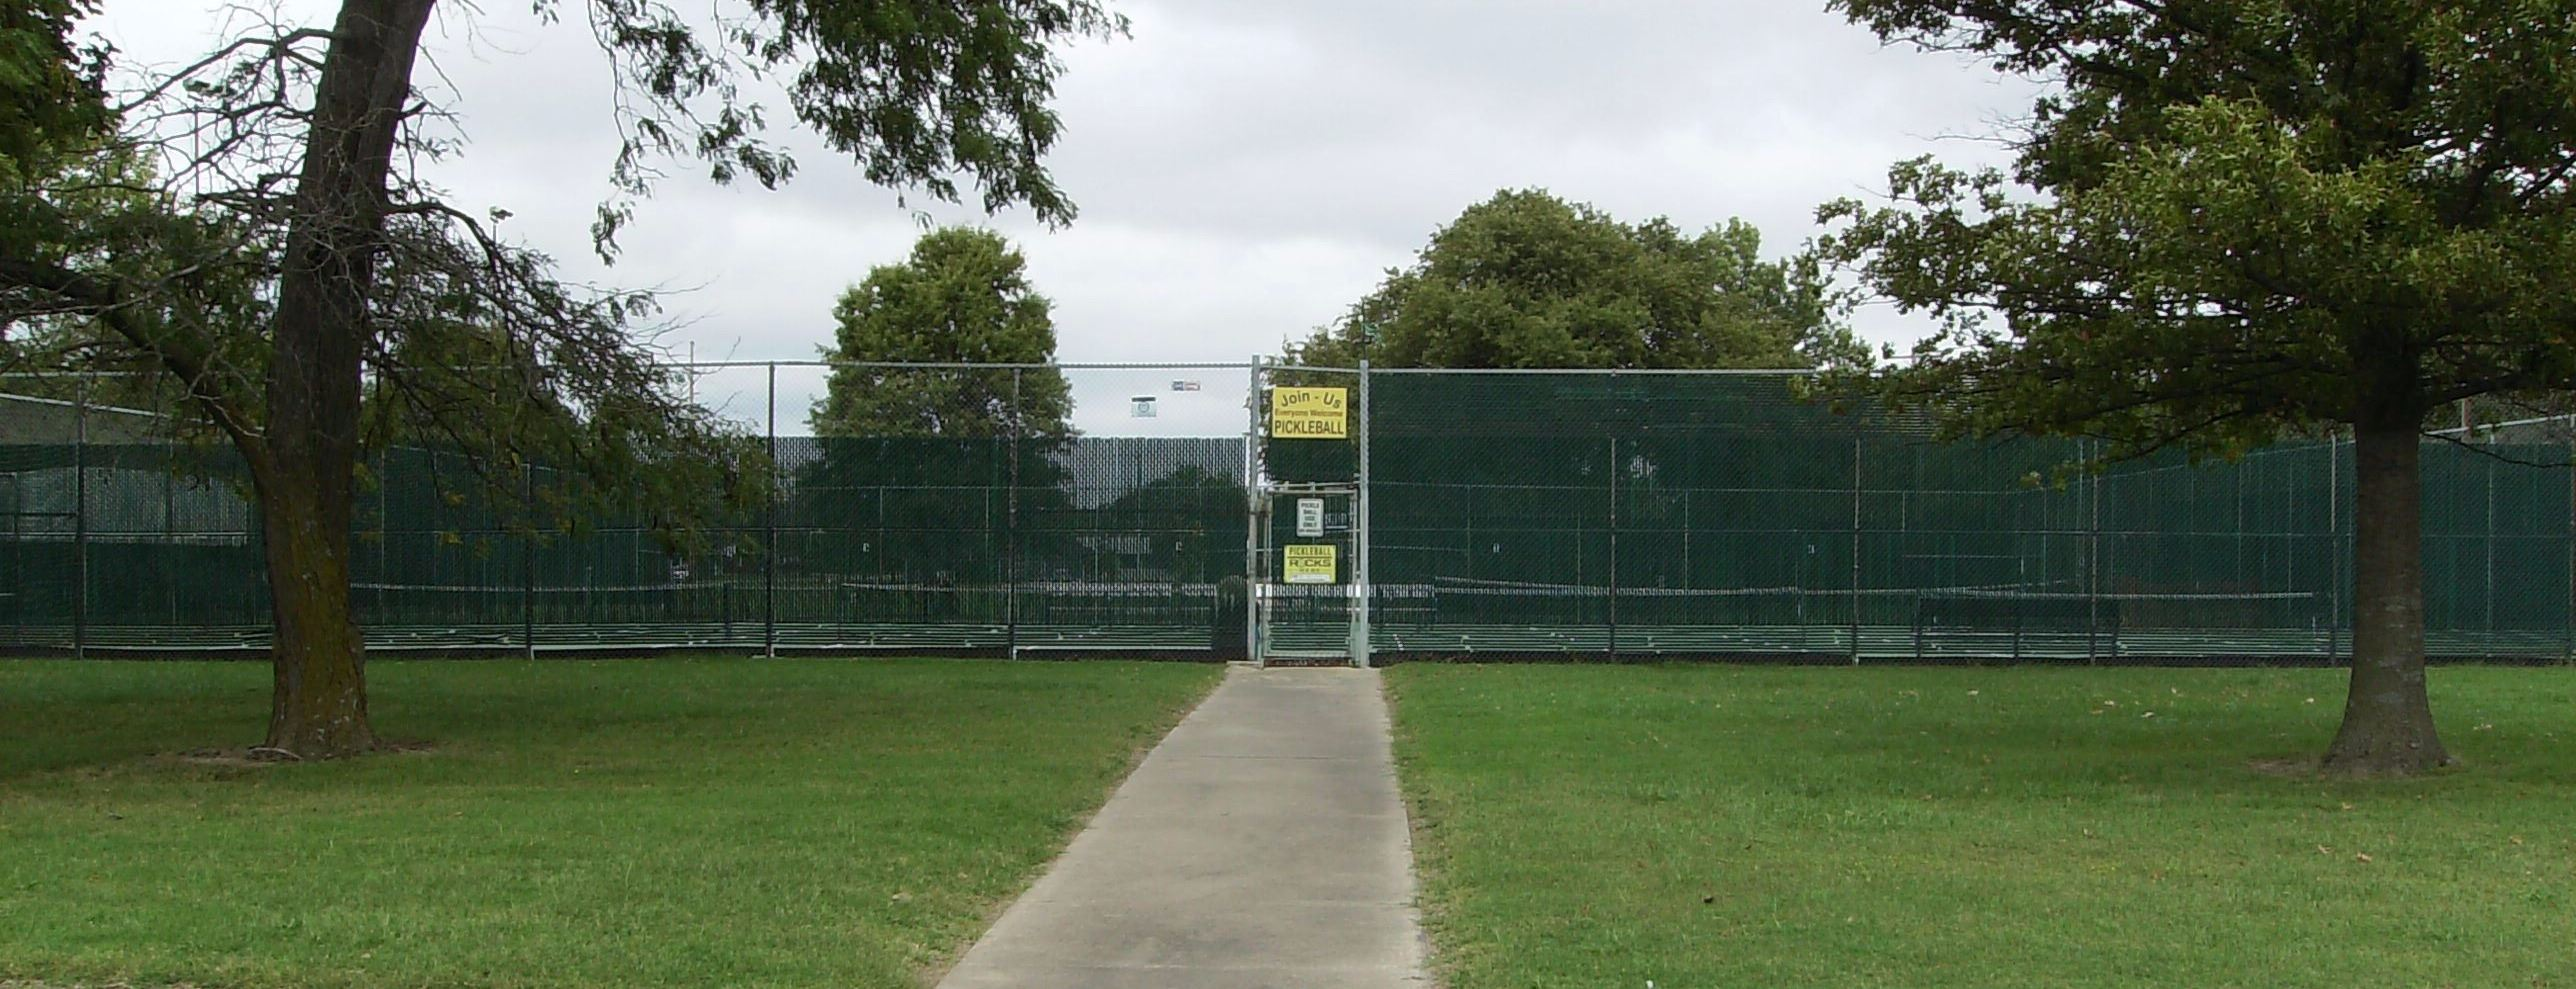 Pickleball Courts Entrance image on the south side of the courts